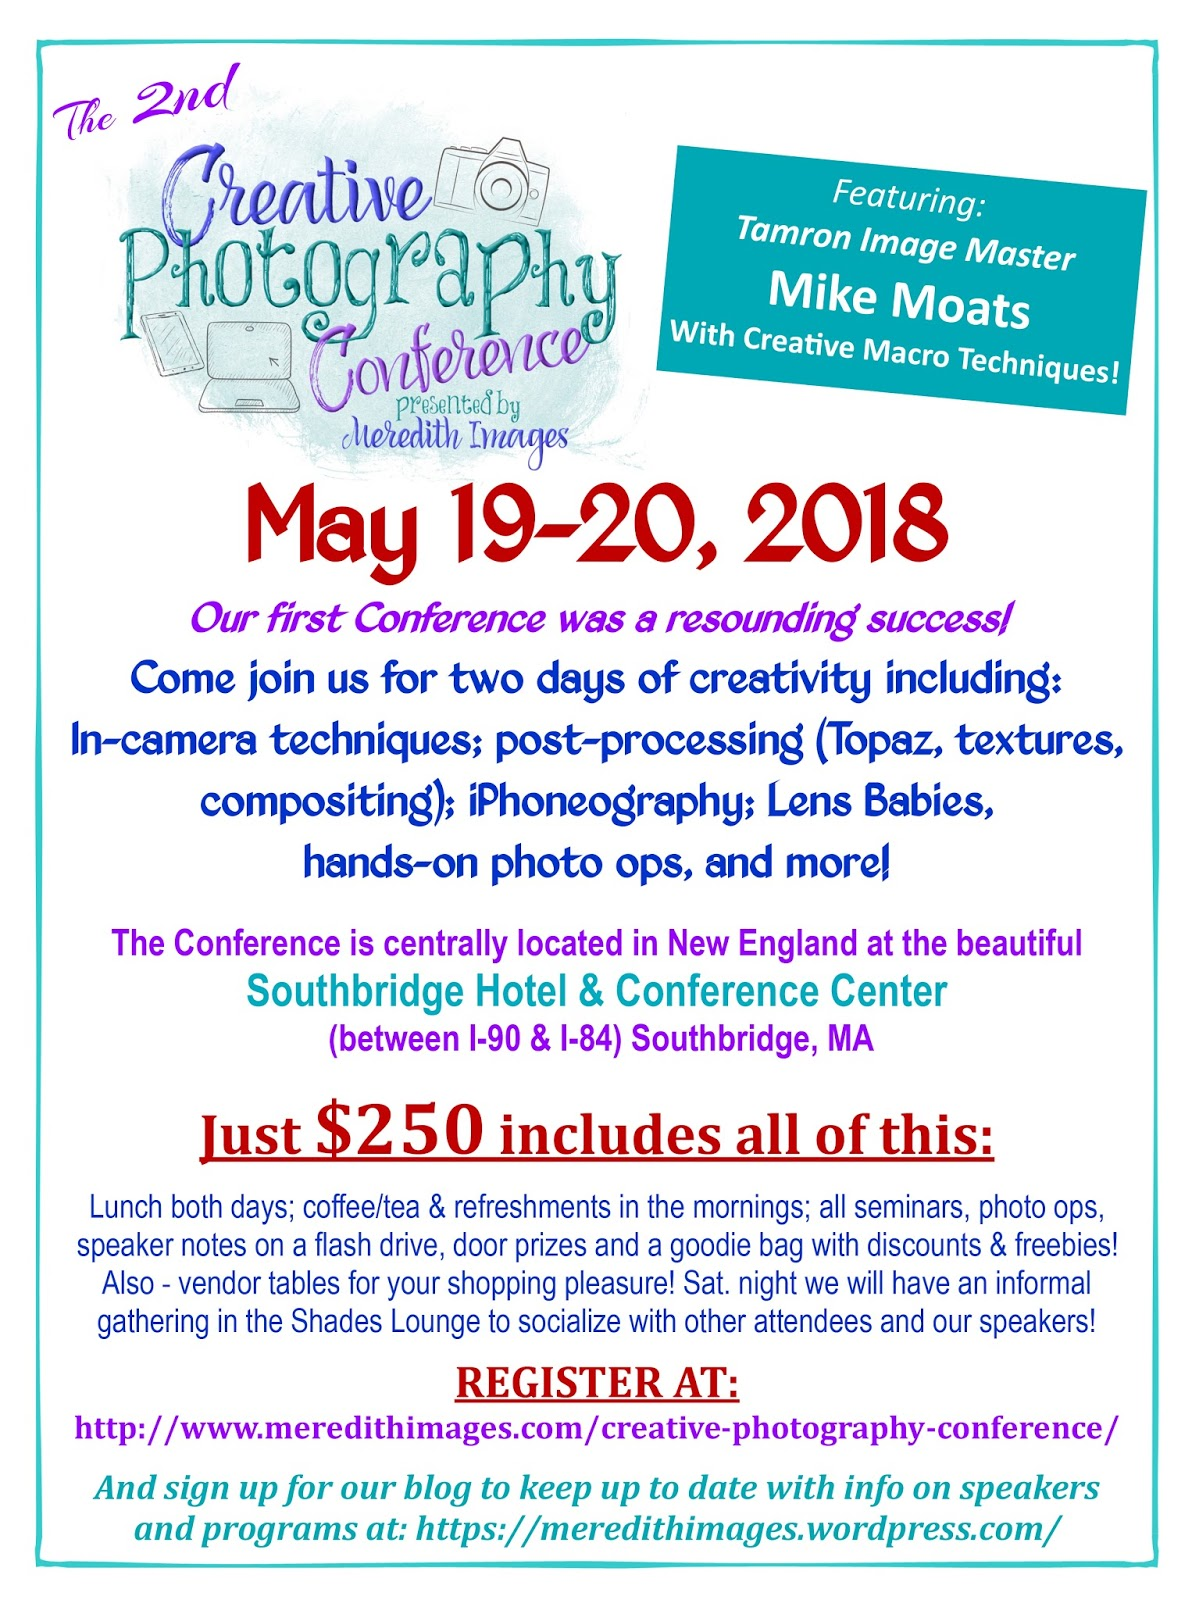 NECCC News Registration For The 2018 Creative Photography Conference Is Now Open